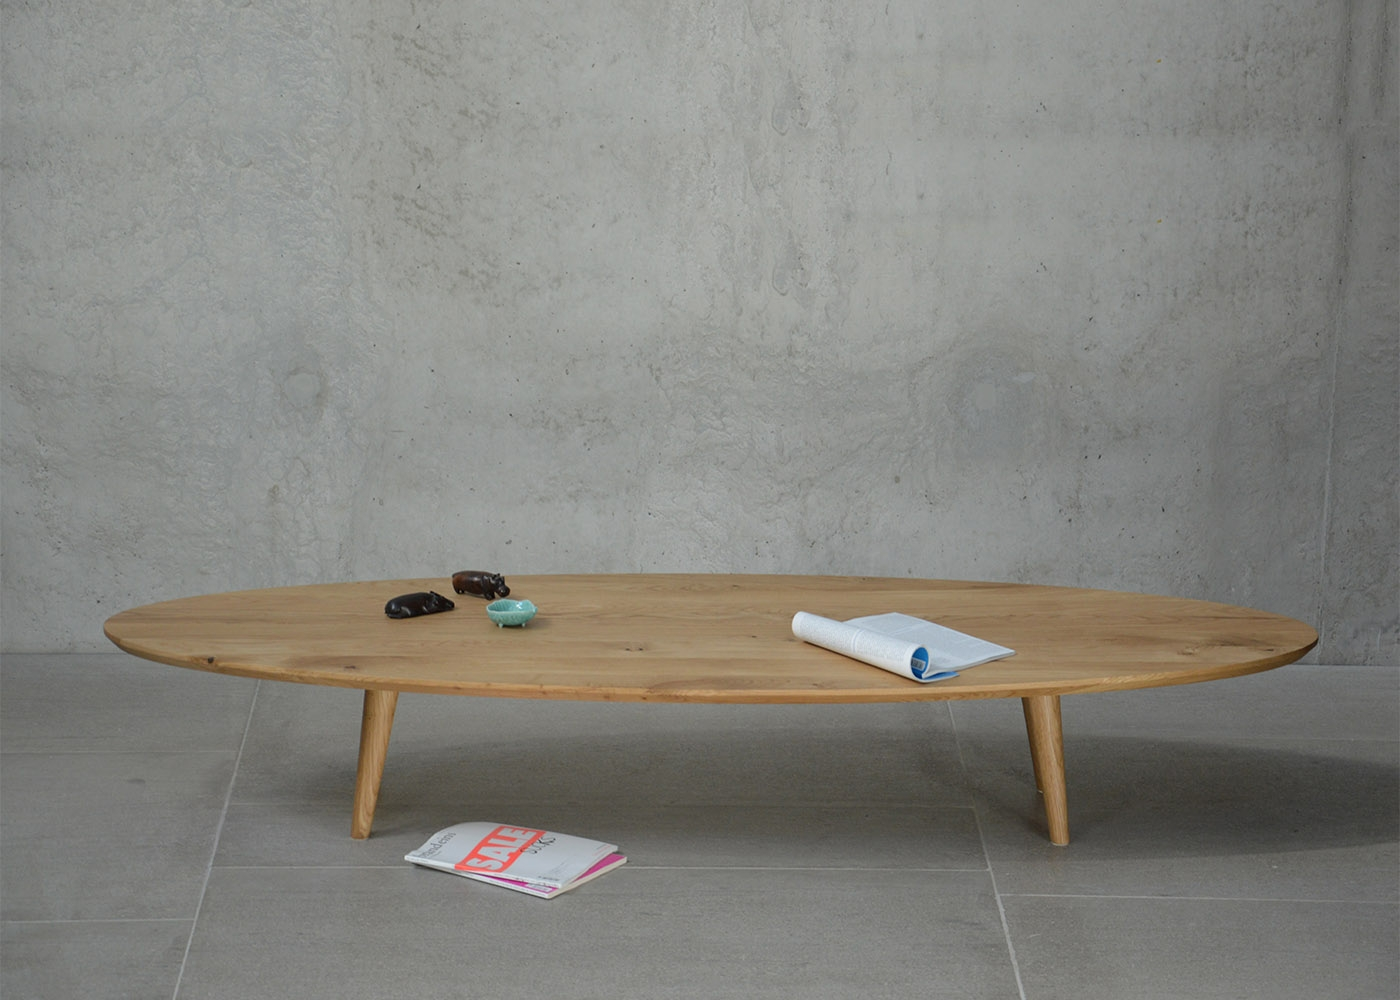 Table basse bois forme originale - Fabriquer table basse originale ...